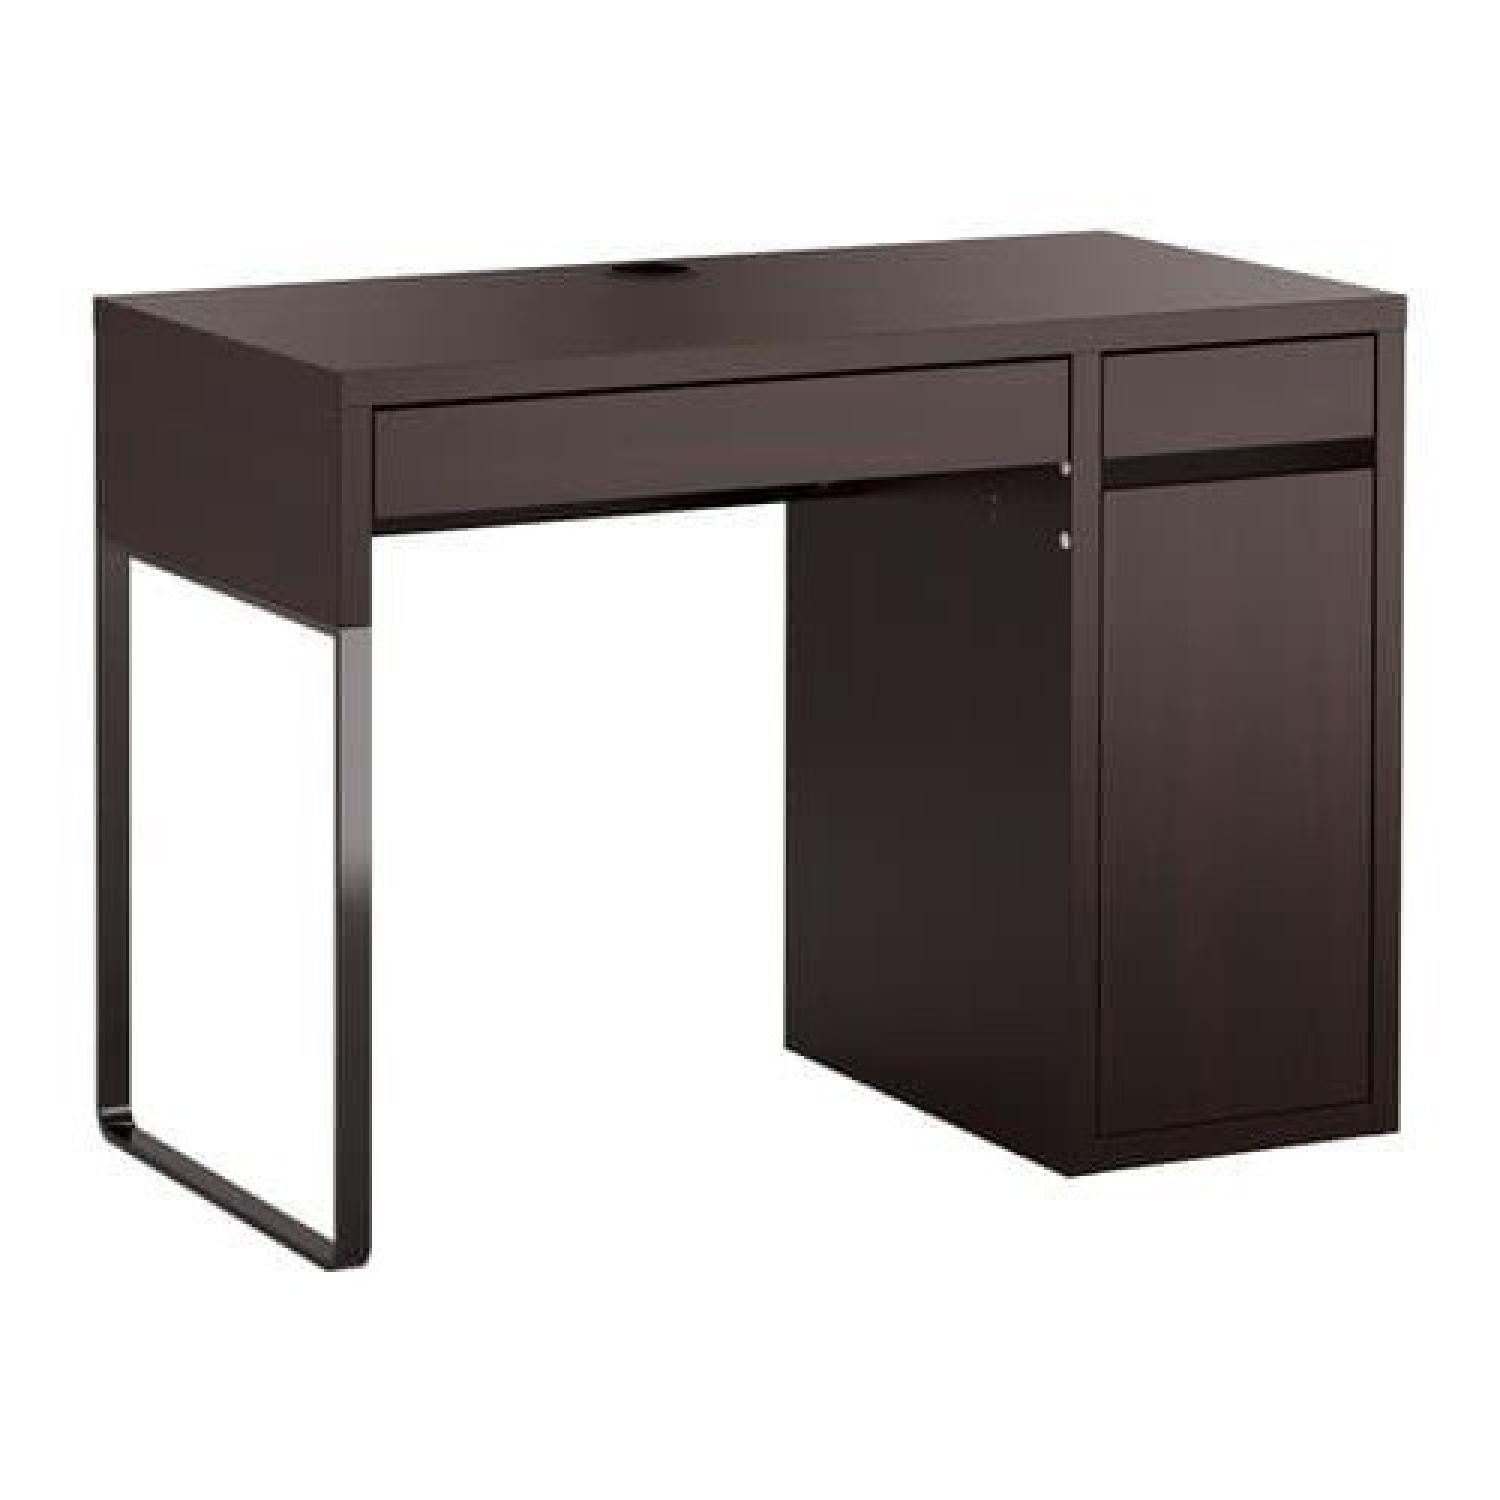 Ikea Table Ikea Micke Black Study Desk Flintan Swivel Chair